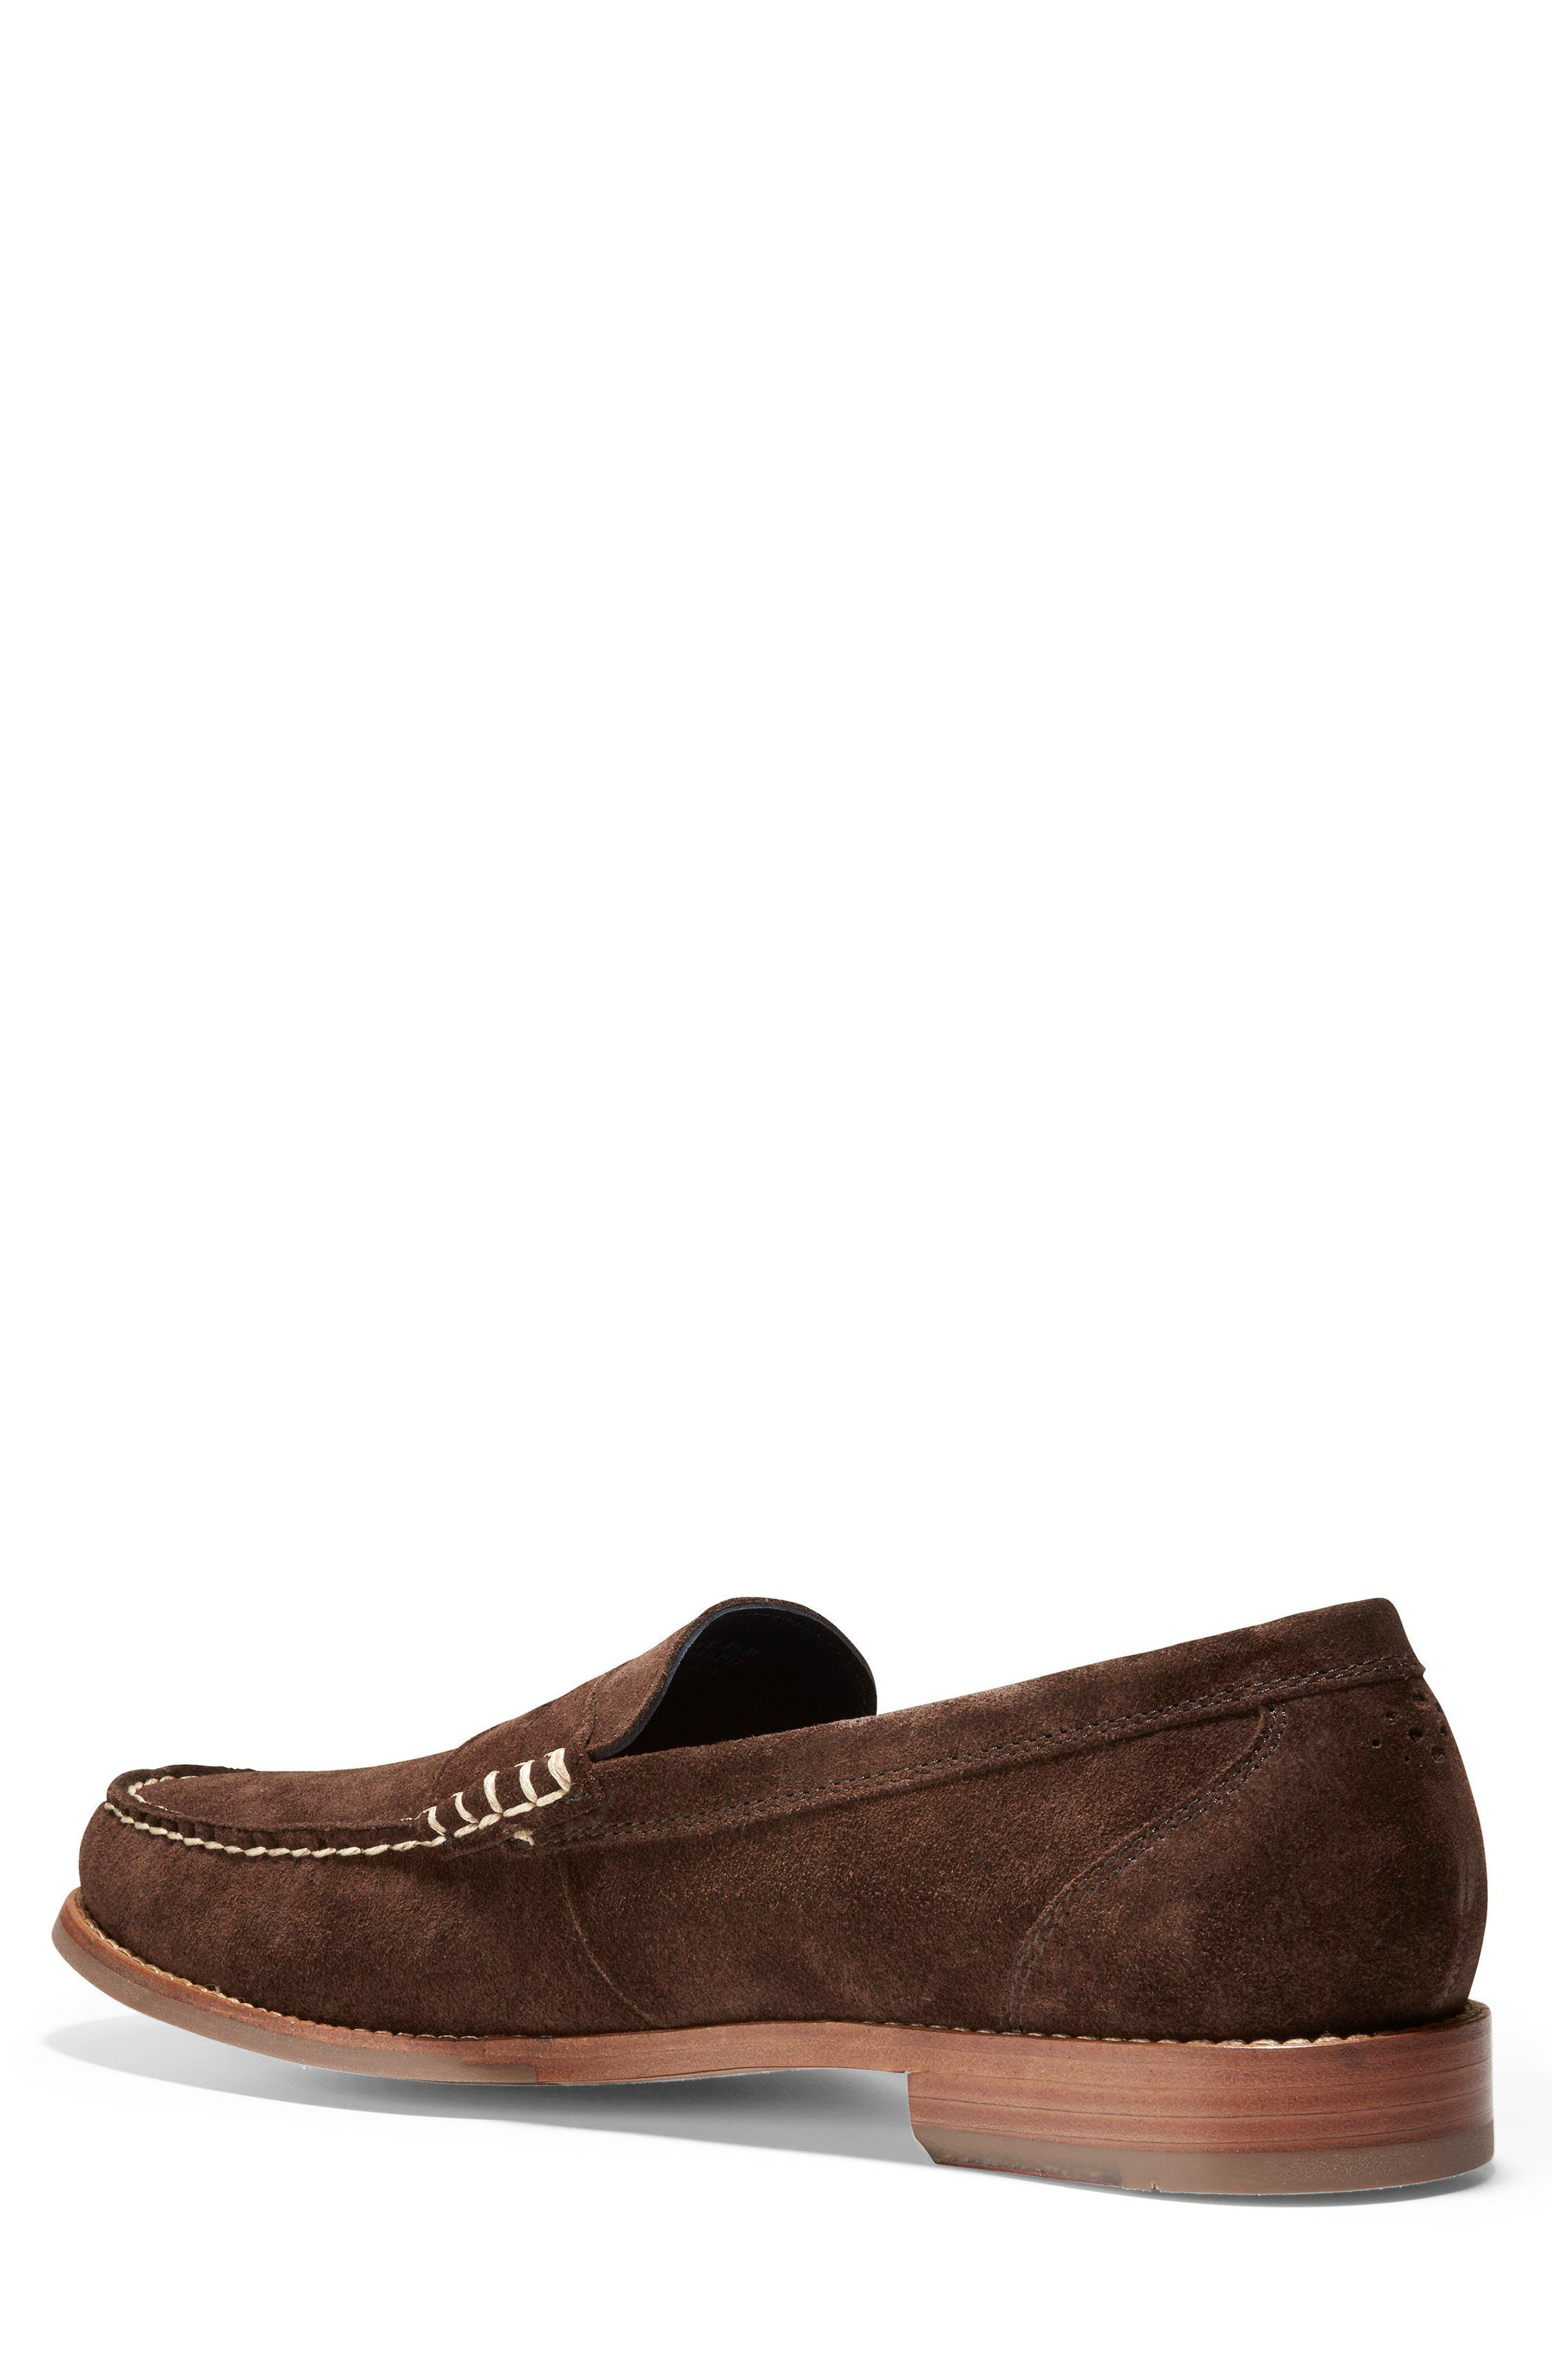 'Pinch Grand' Penny Loafer,                             Alternate thumbnail 2, color,                             Brown Suede